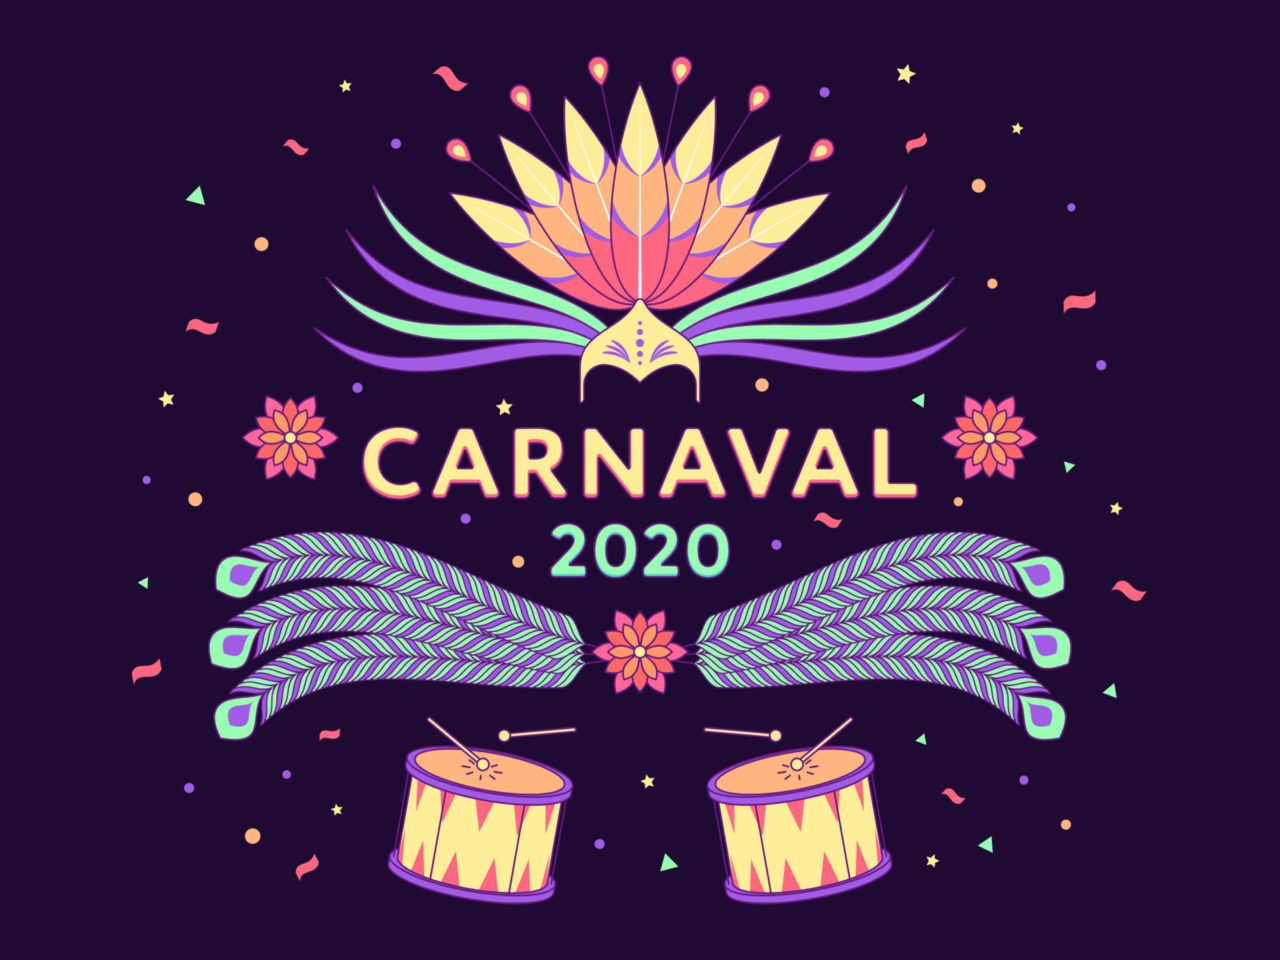 Olé – get dressed up for the Carnival this year!